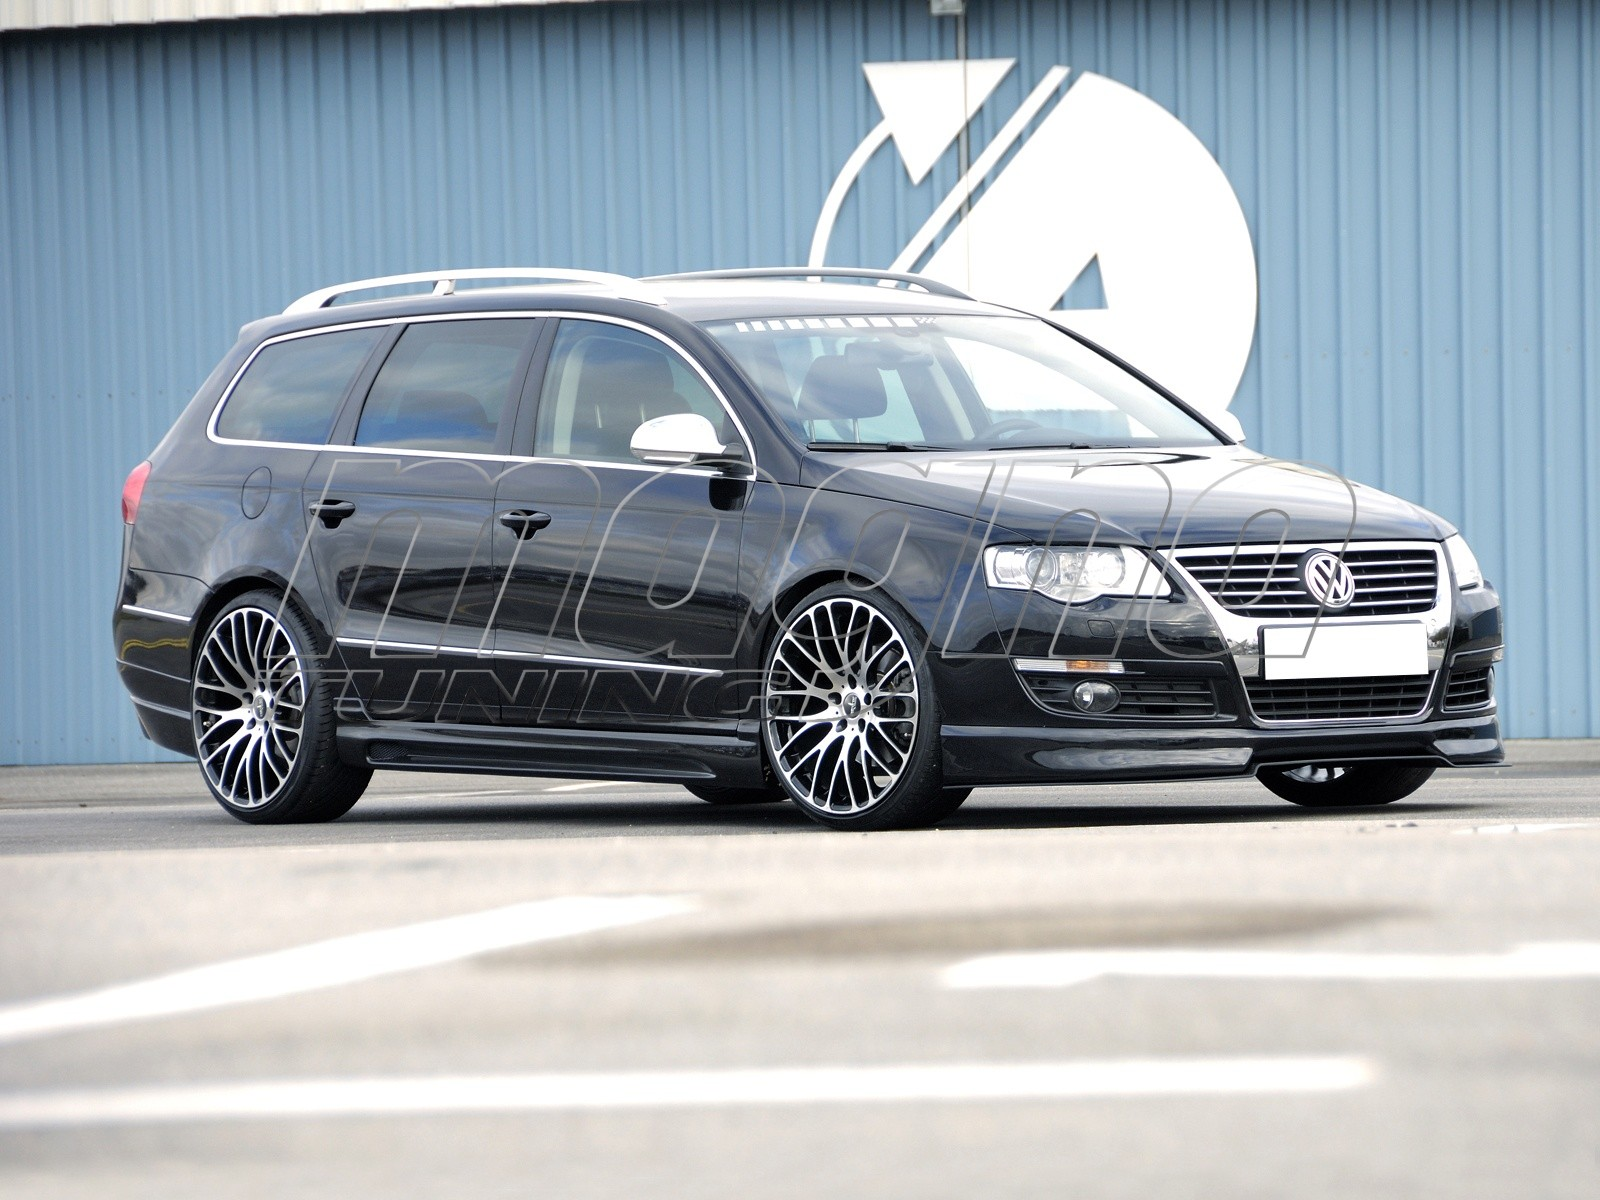 vw passat b6 3c variant recto body kit. Black Bedroom Furniture Sets. Home Design Ideas